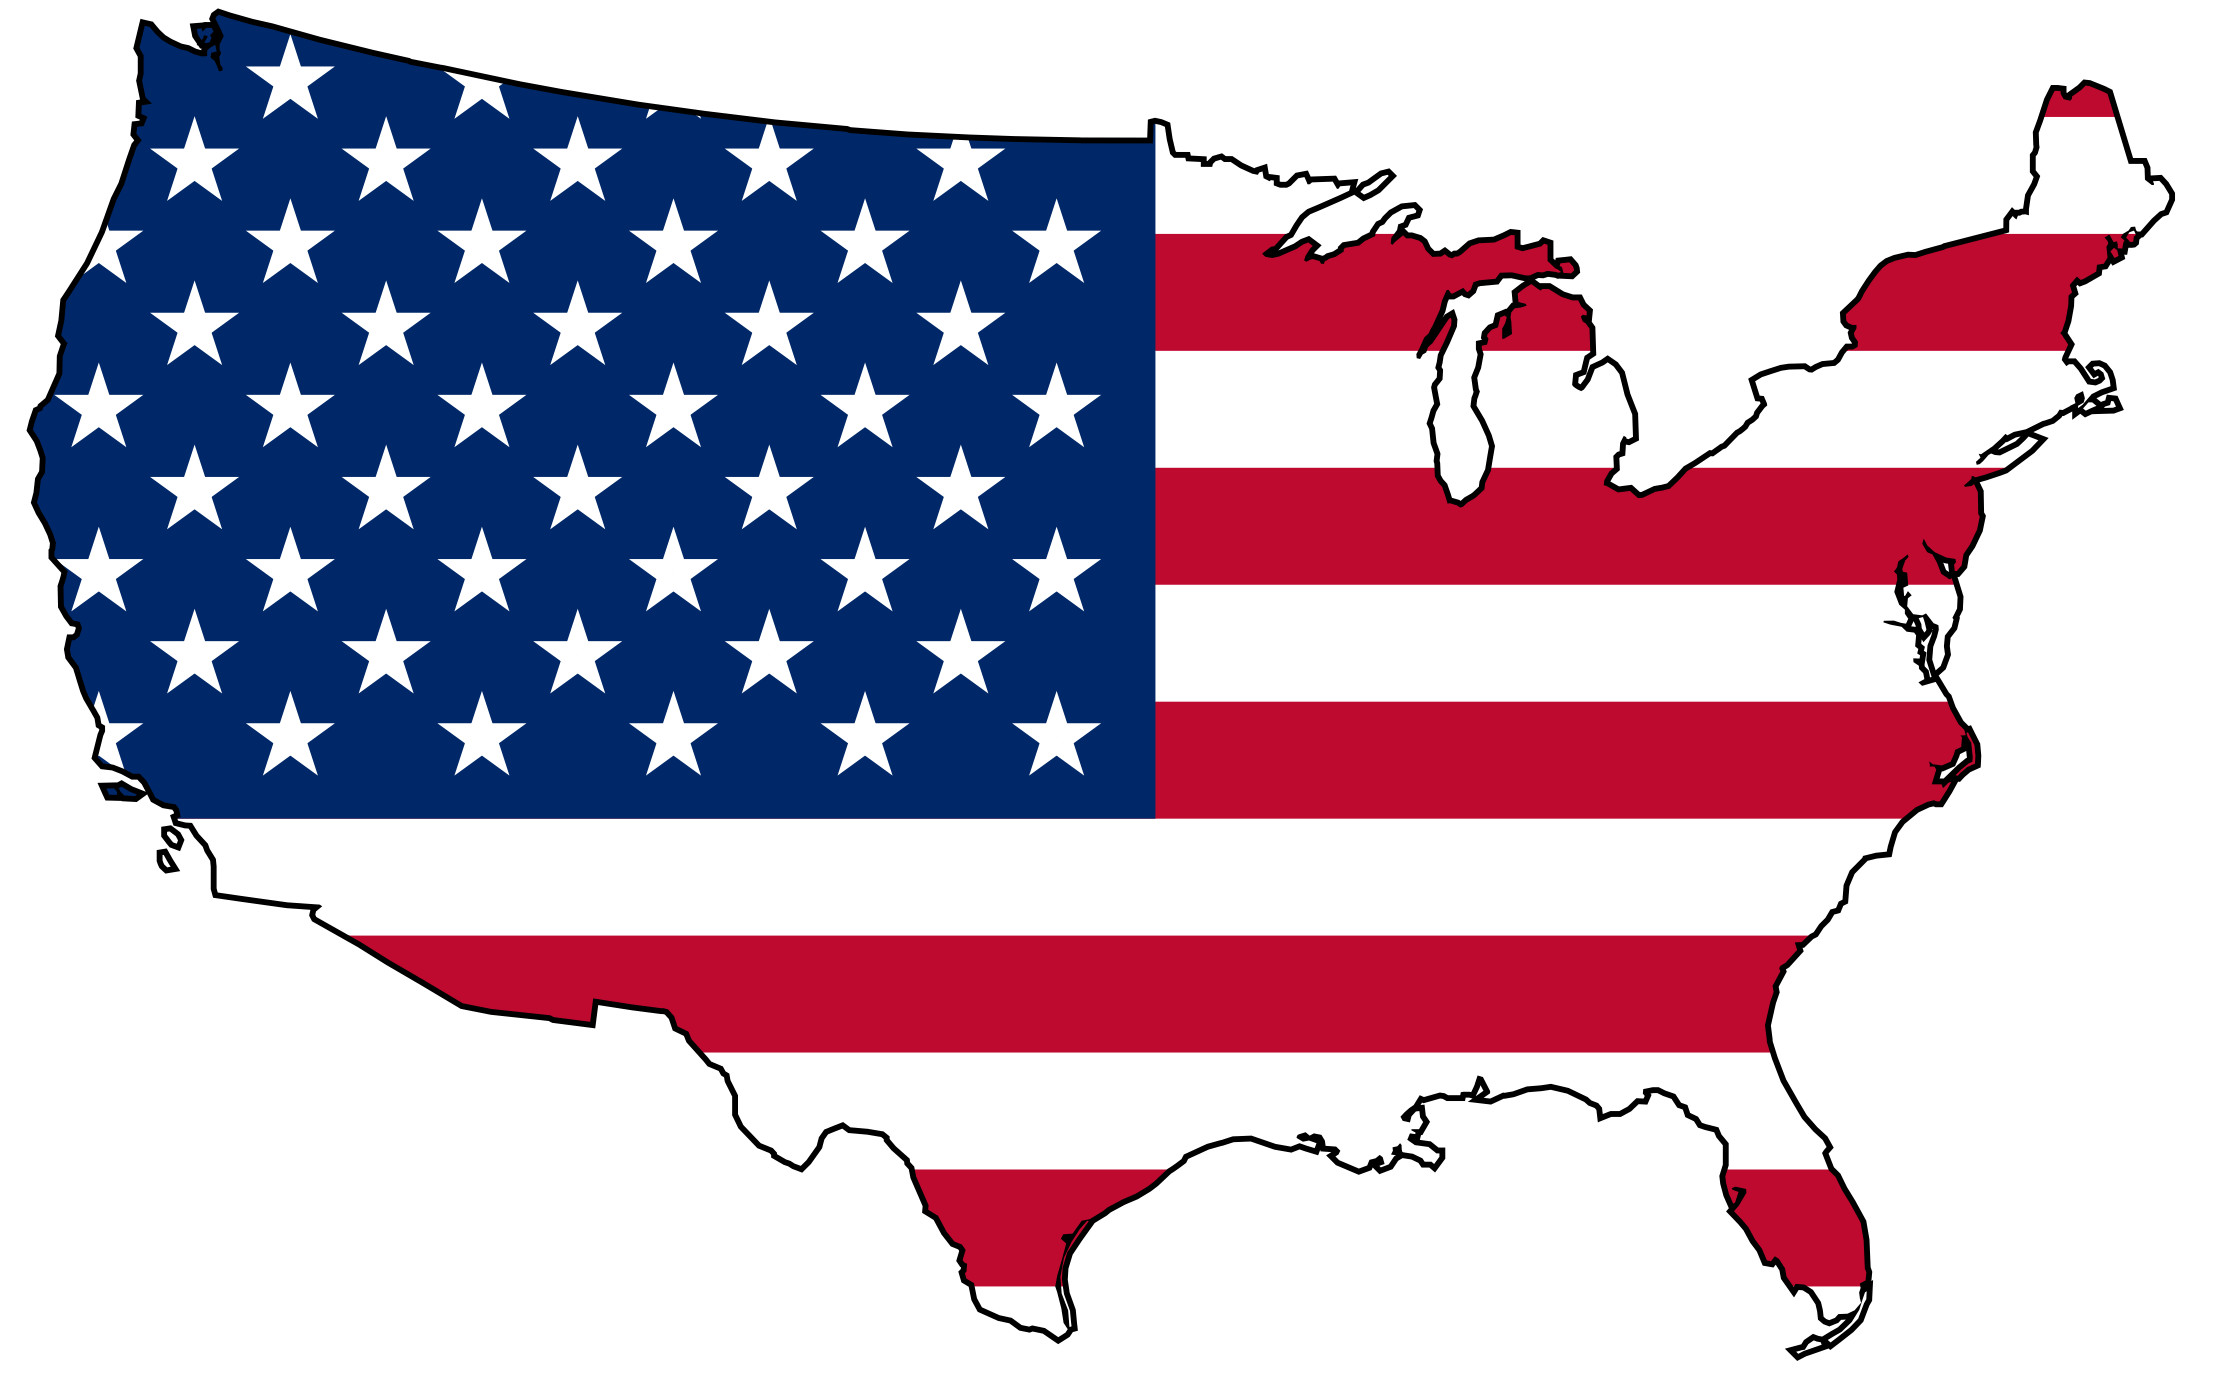 Res: 2222x1380, Landscape Wallpaper. Download the following USA Flag ...